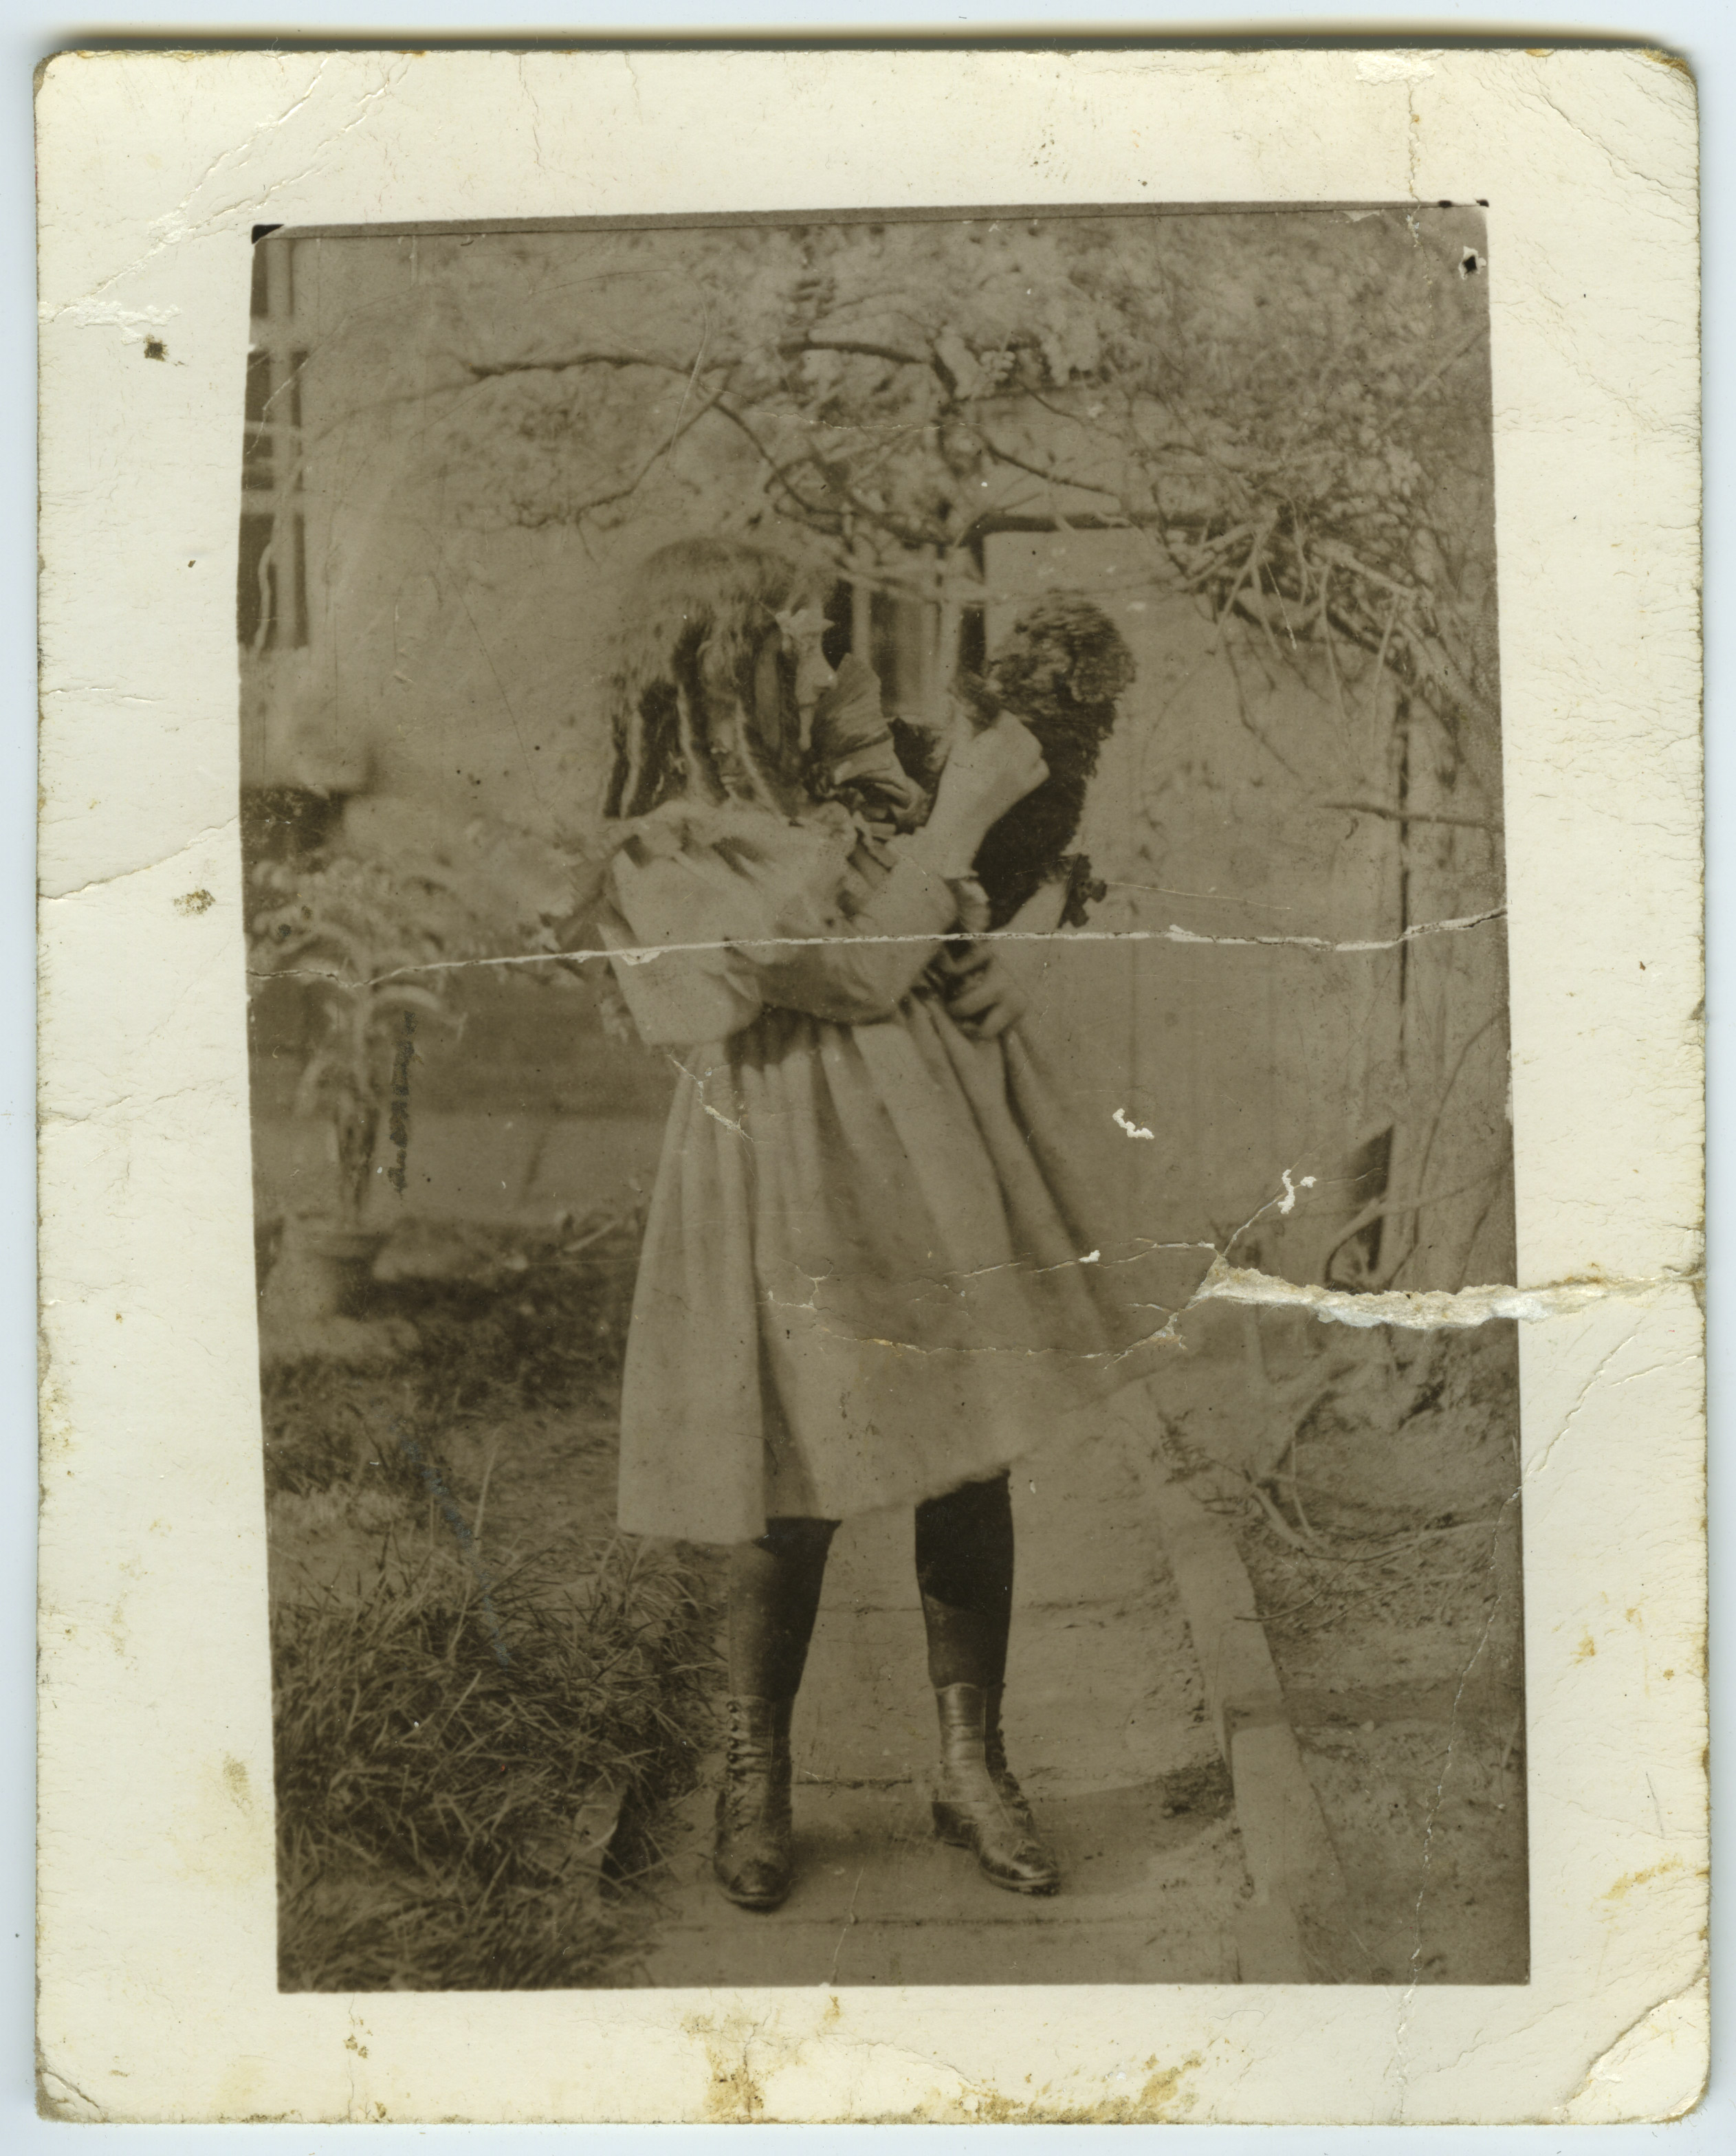 Early Photographs of Mana-Zucca | FIU Special Collections